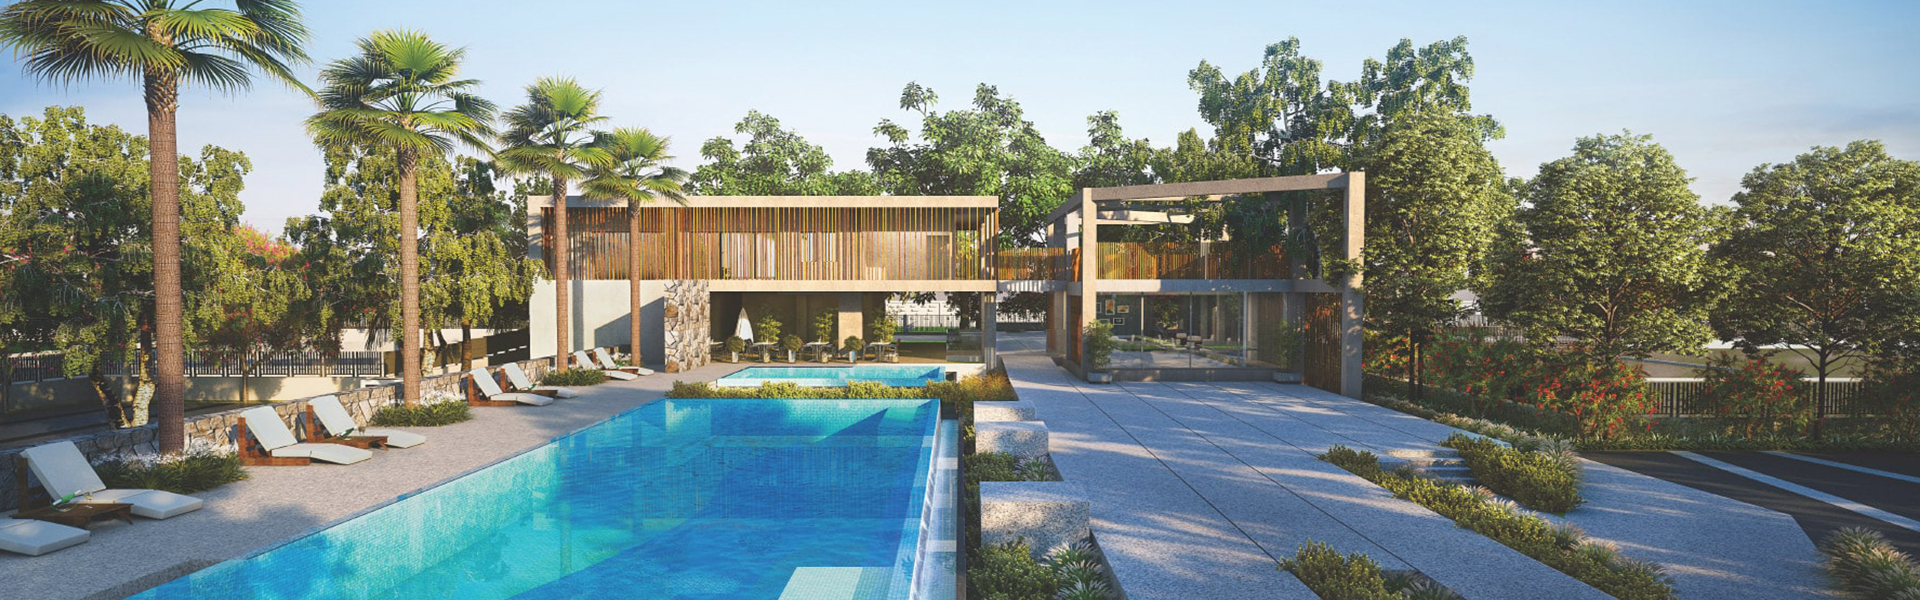 Villa Plot With Swimming Pool